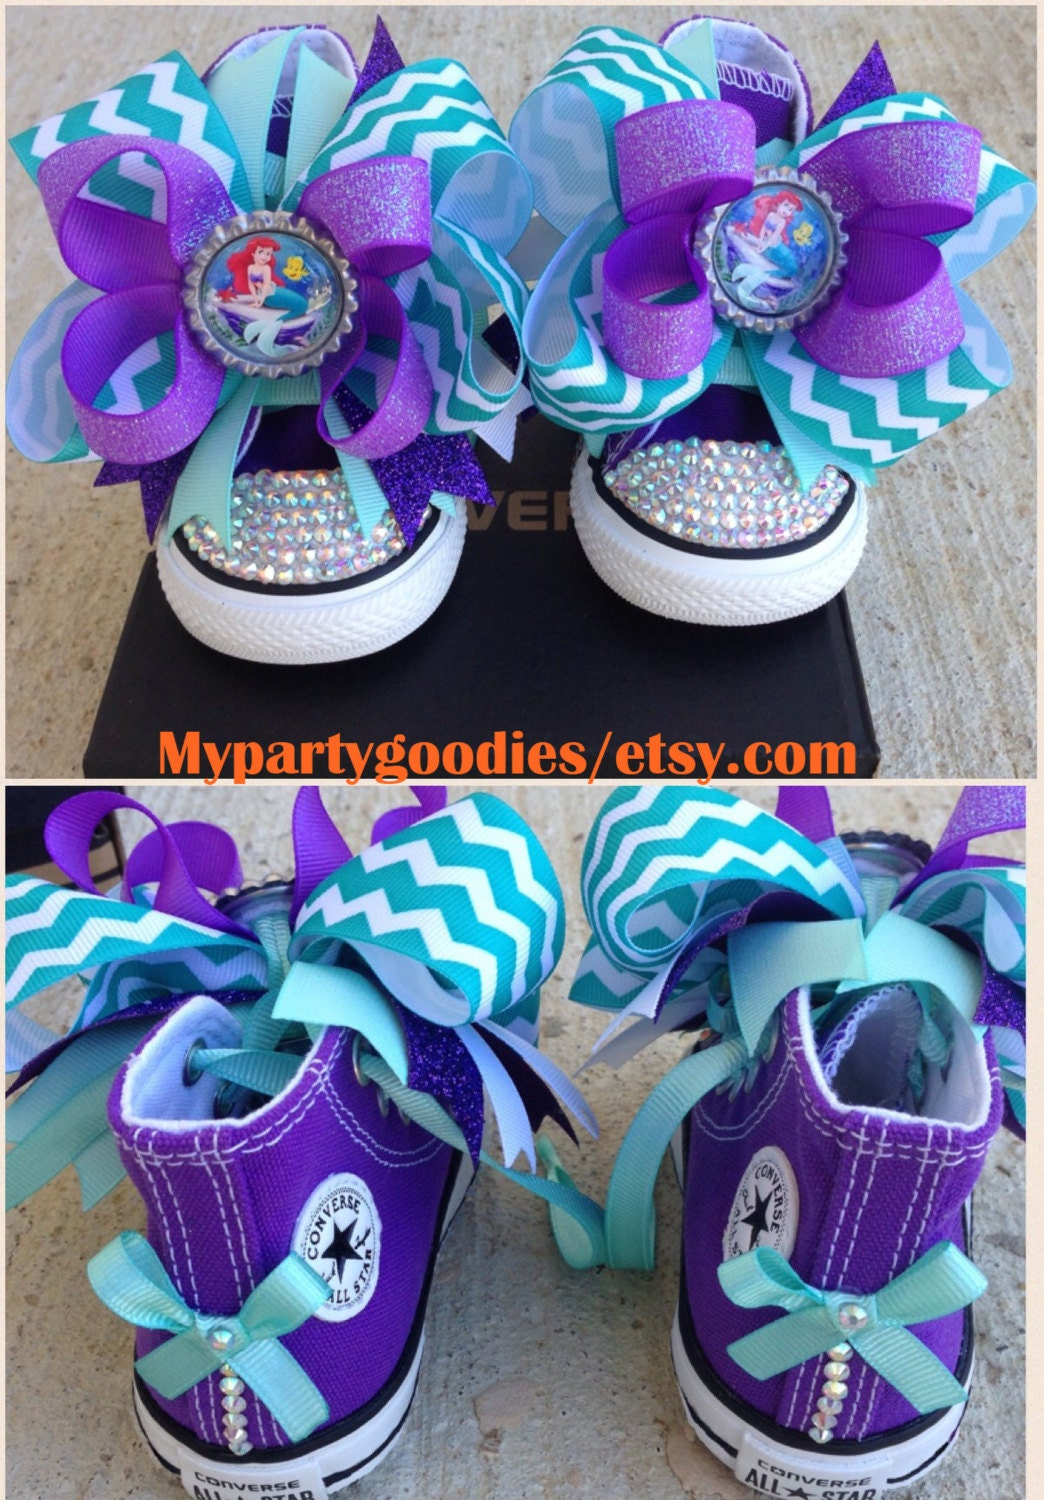 d4df1606b4f4 Under the sea shoes little mermaid converse shoesbling